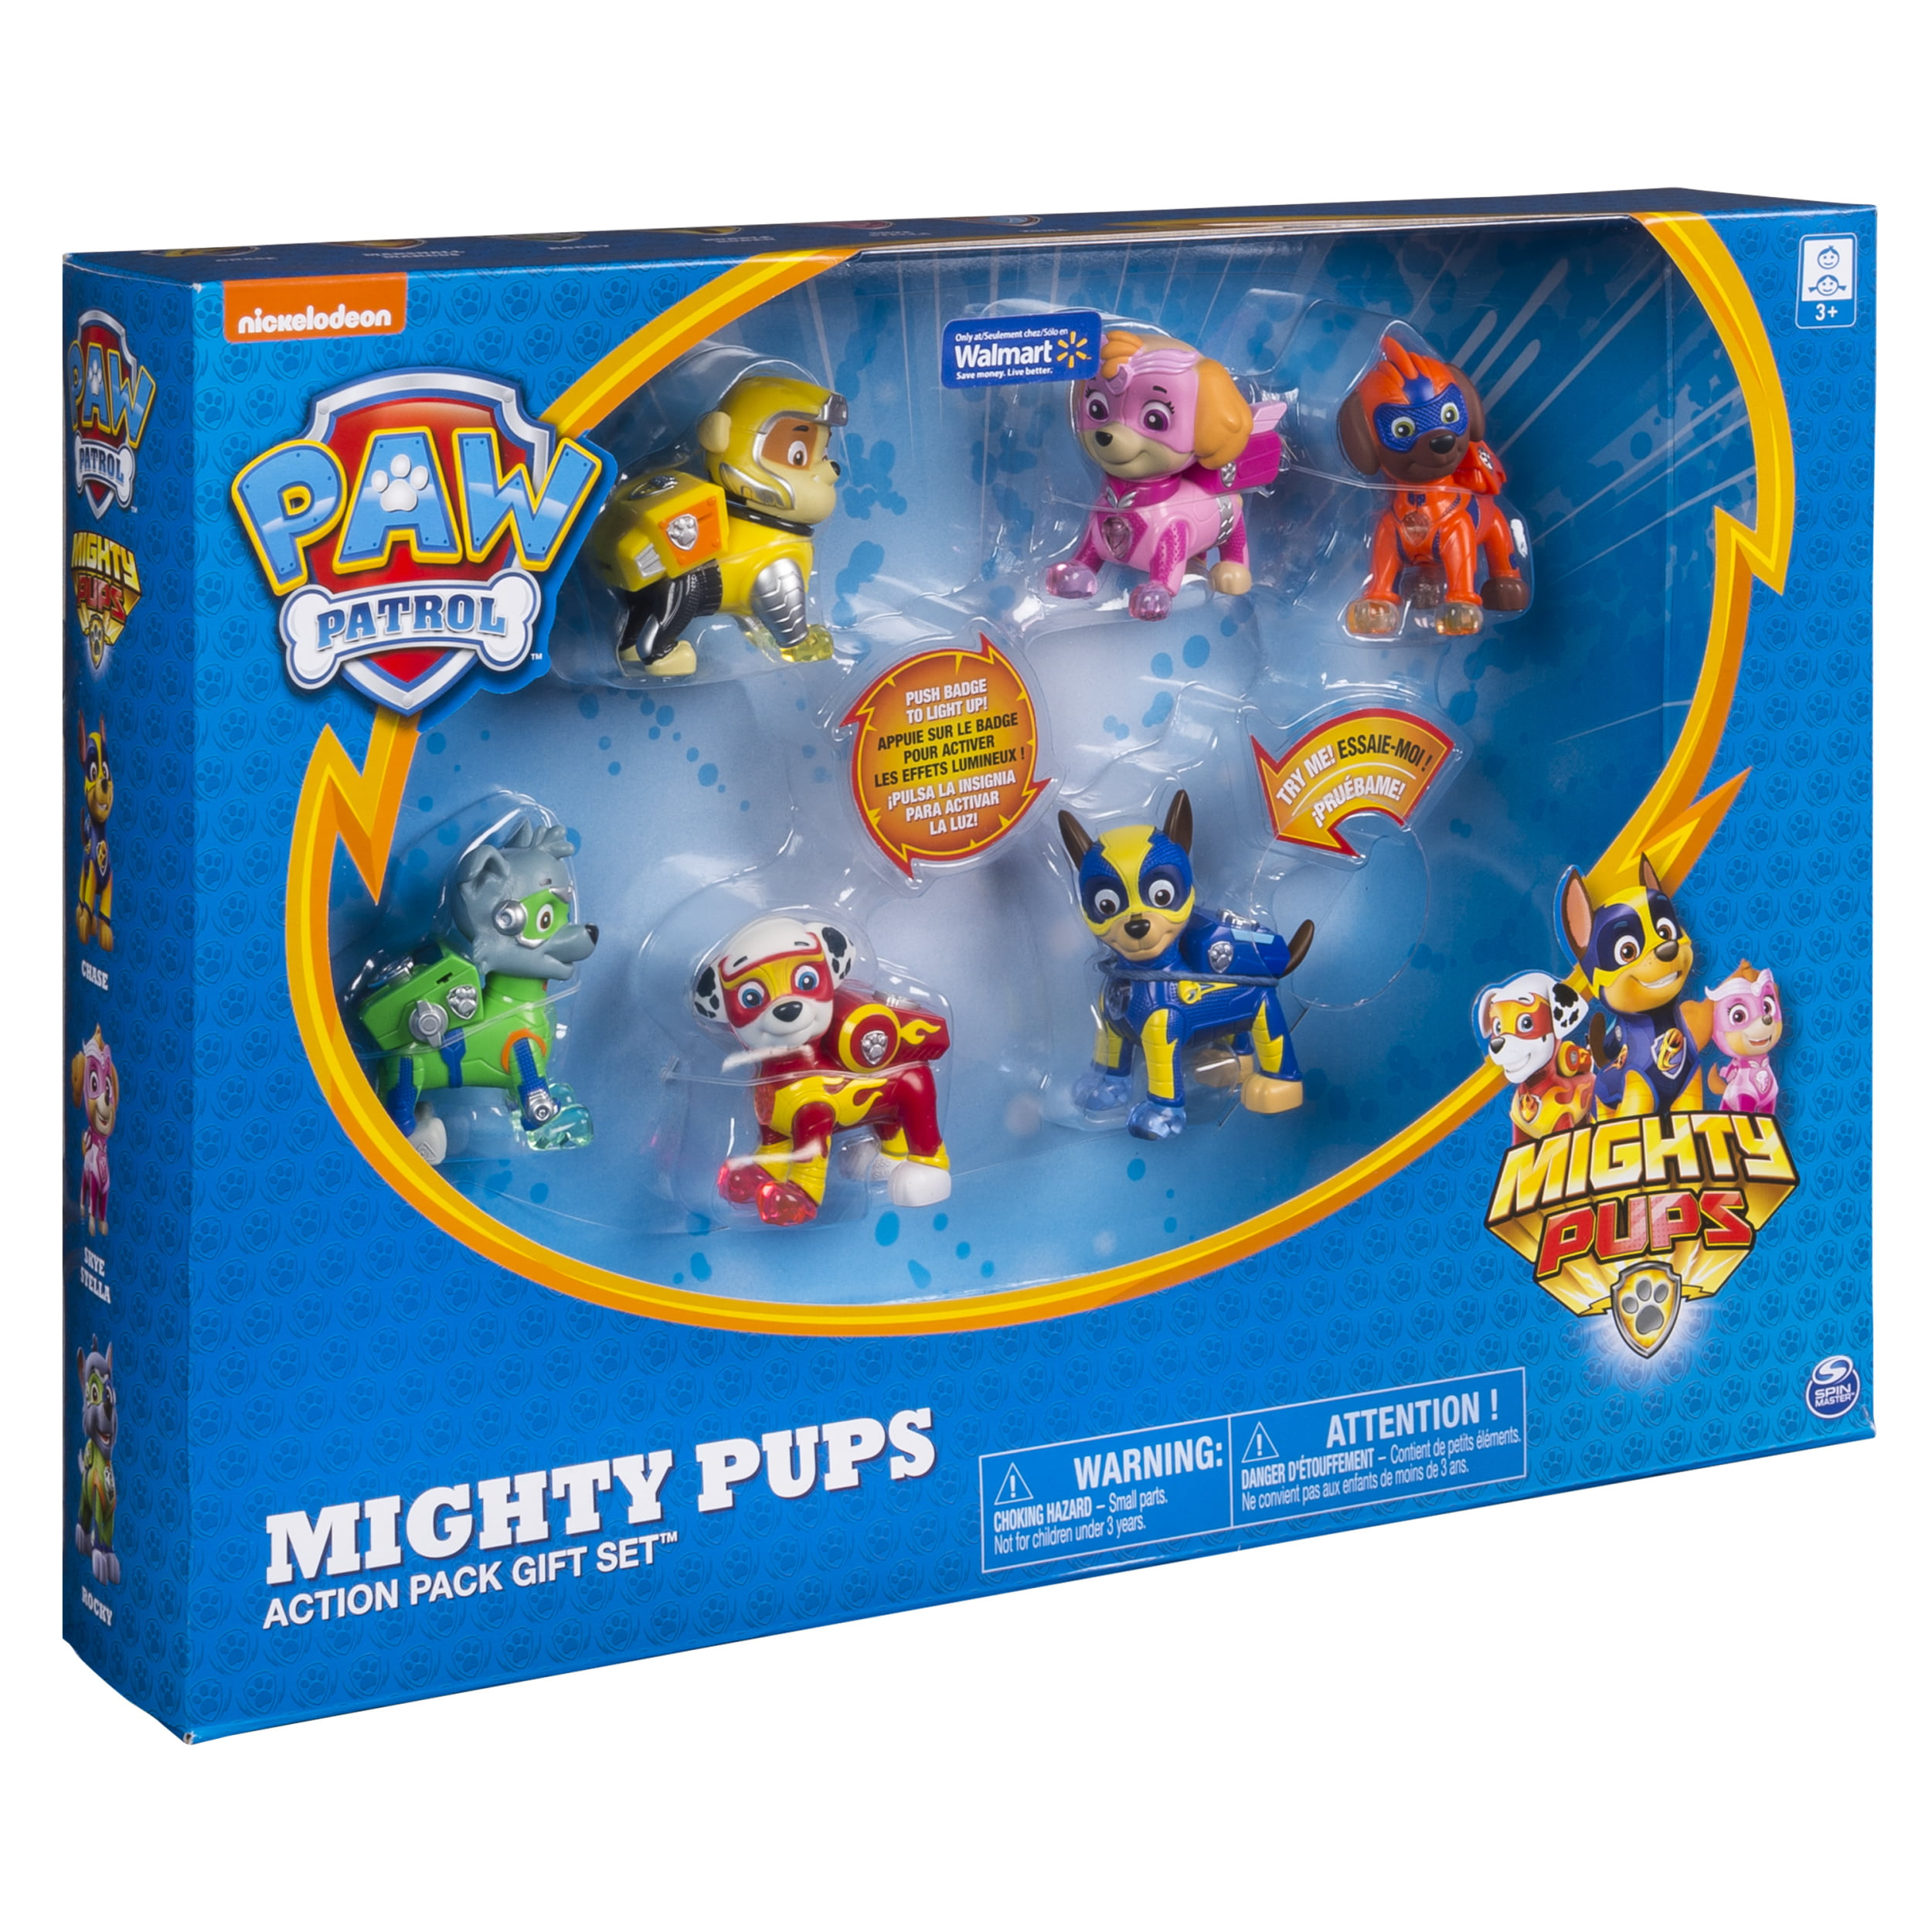 Paw Patrol Mighty Pups 6Pack Gift Set ORIGINAL Figures